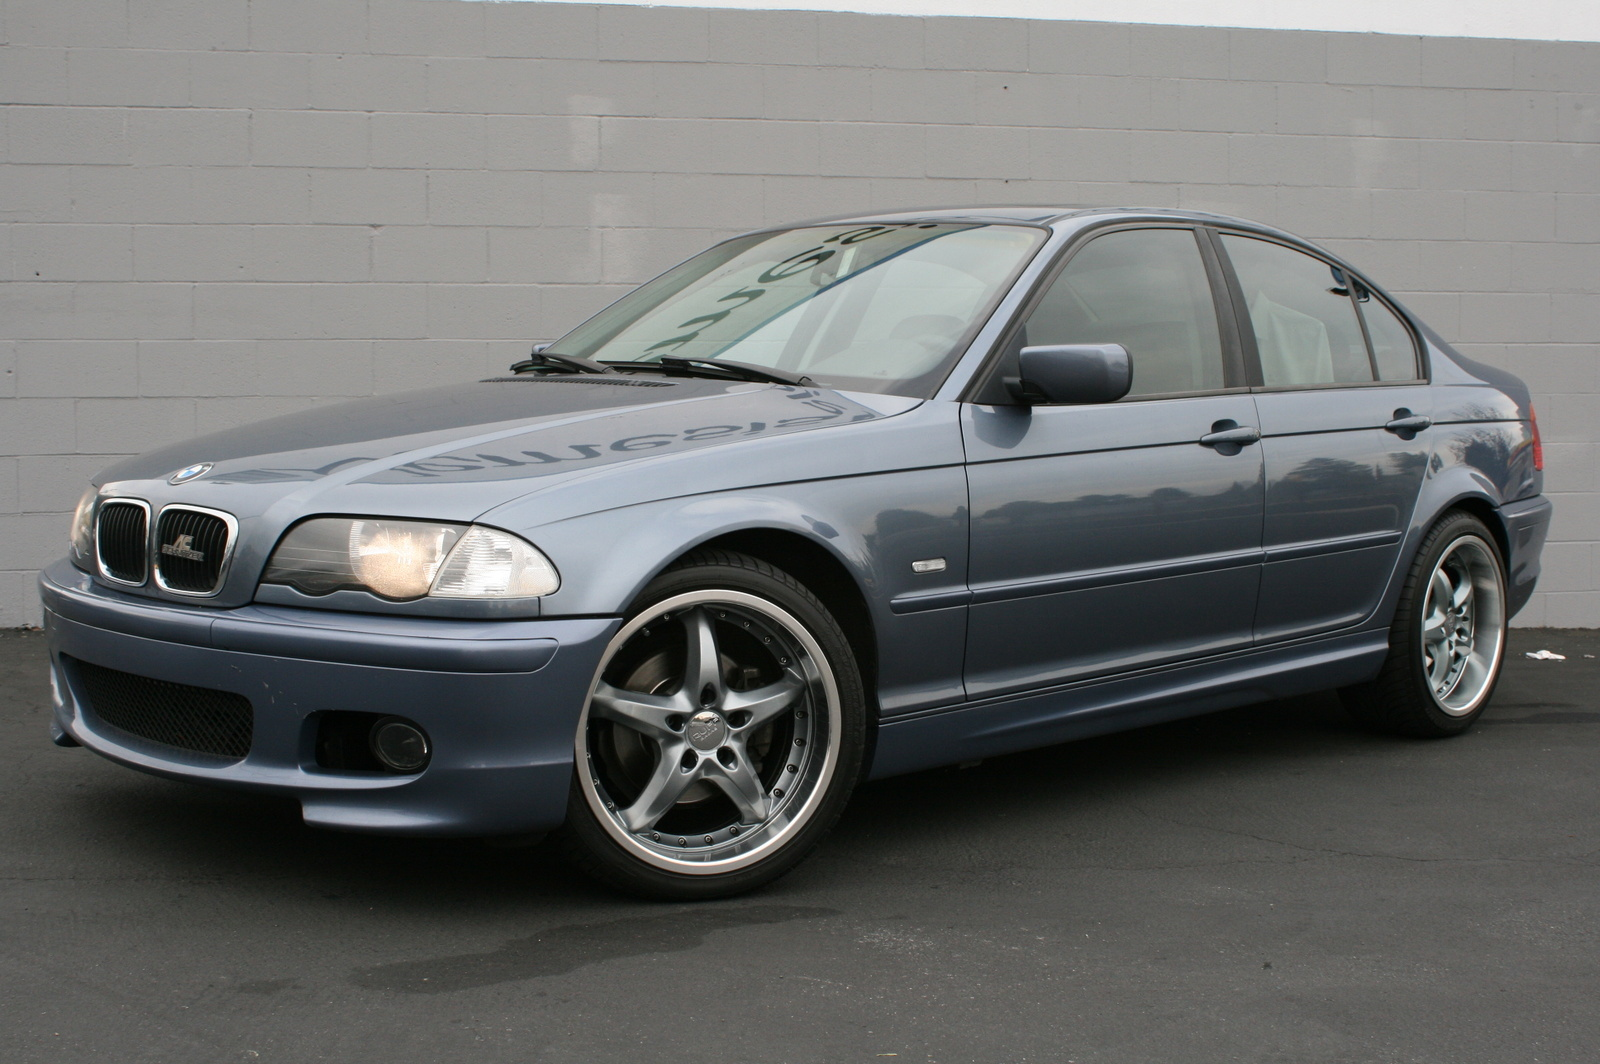 2001 bmw 3 series - overview - cargurus